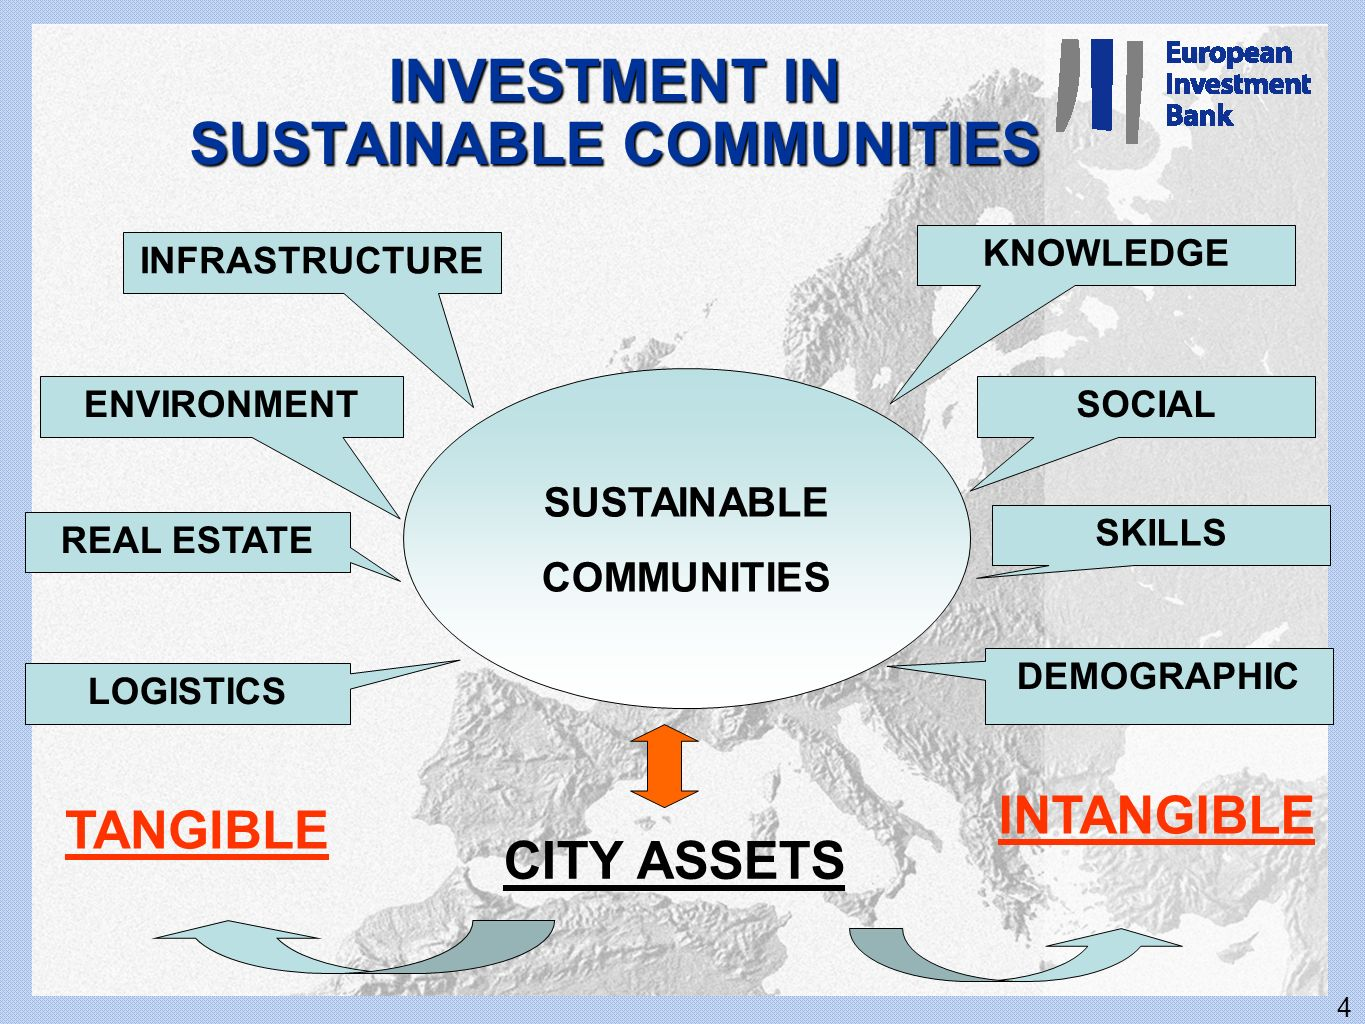 4 INVESTMENT IN SUSTAINABLE COMMUNITIES SUSTAINABLE COMMUNITIES INFRASTRUCTURE KNOWLEDGE ENVIRONMENT REAL ESTATE LOGISTICS TANGIBLE INTANGIBLE DEMOGRA